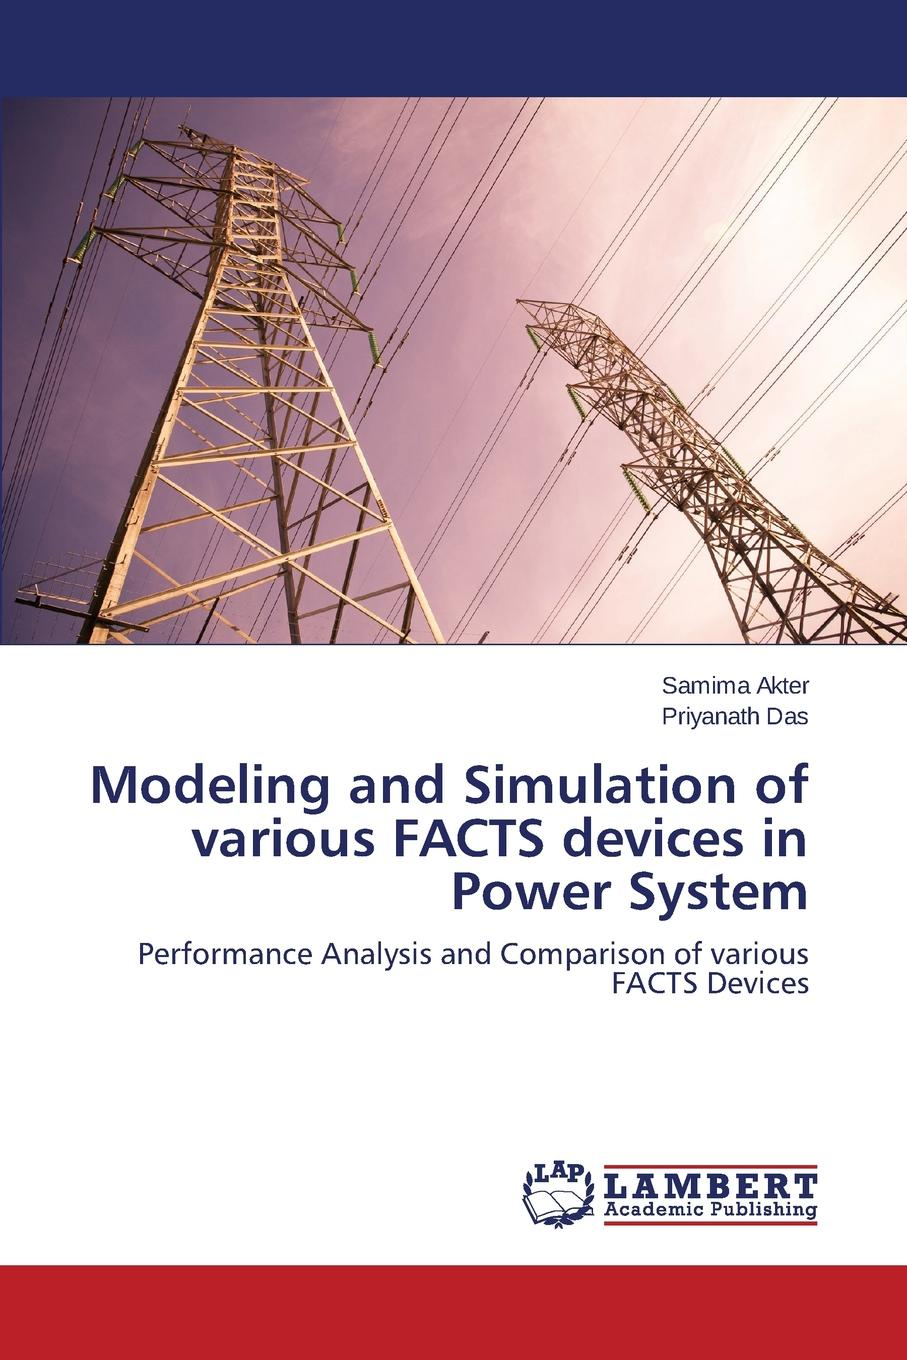 Akter Samima, Das Priyanath Modeling and Simulation of various FACTS devices in Power System nina rae springfields the power of hope